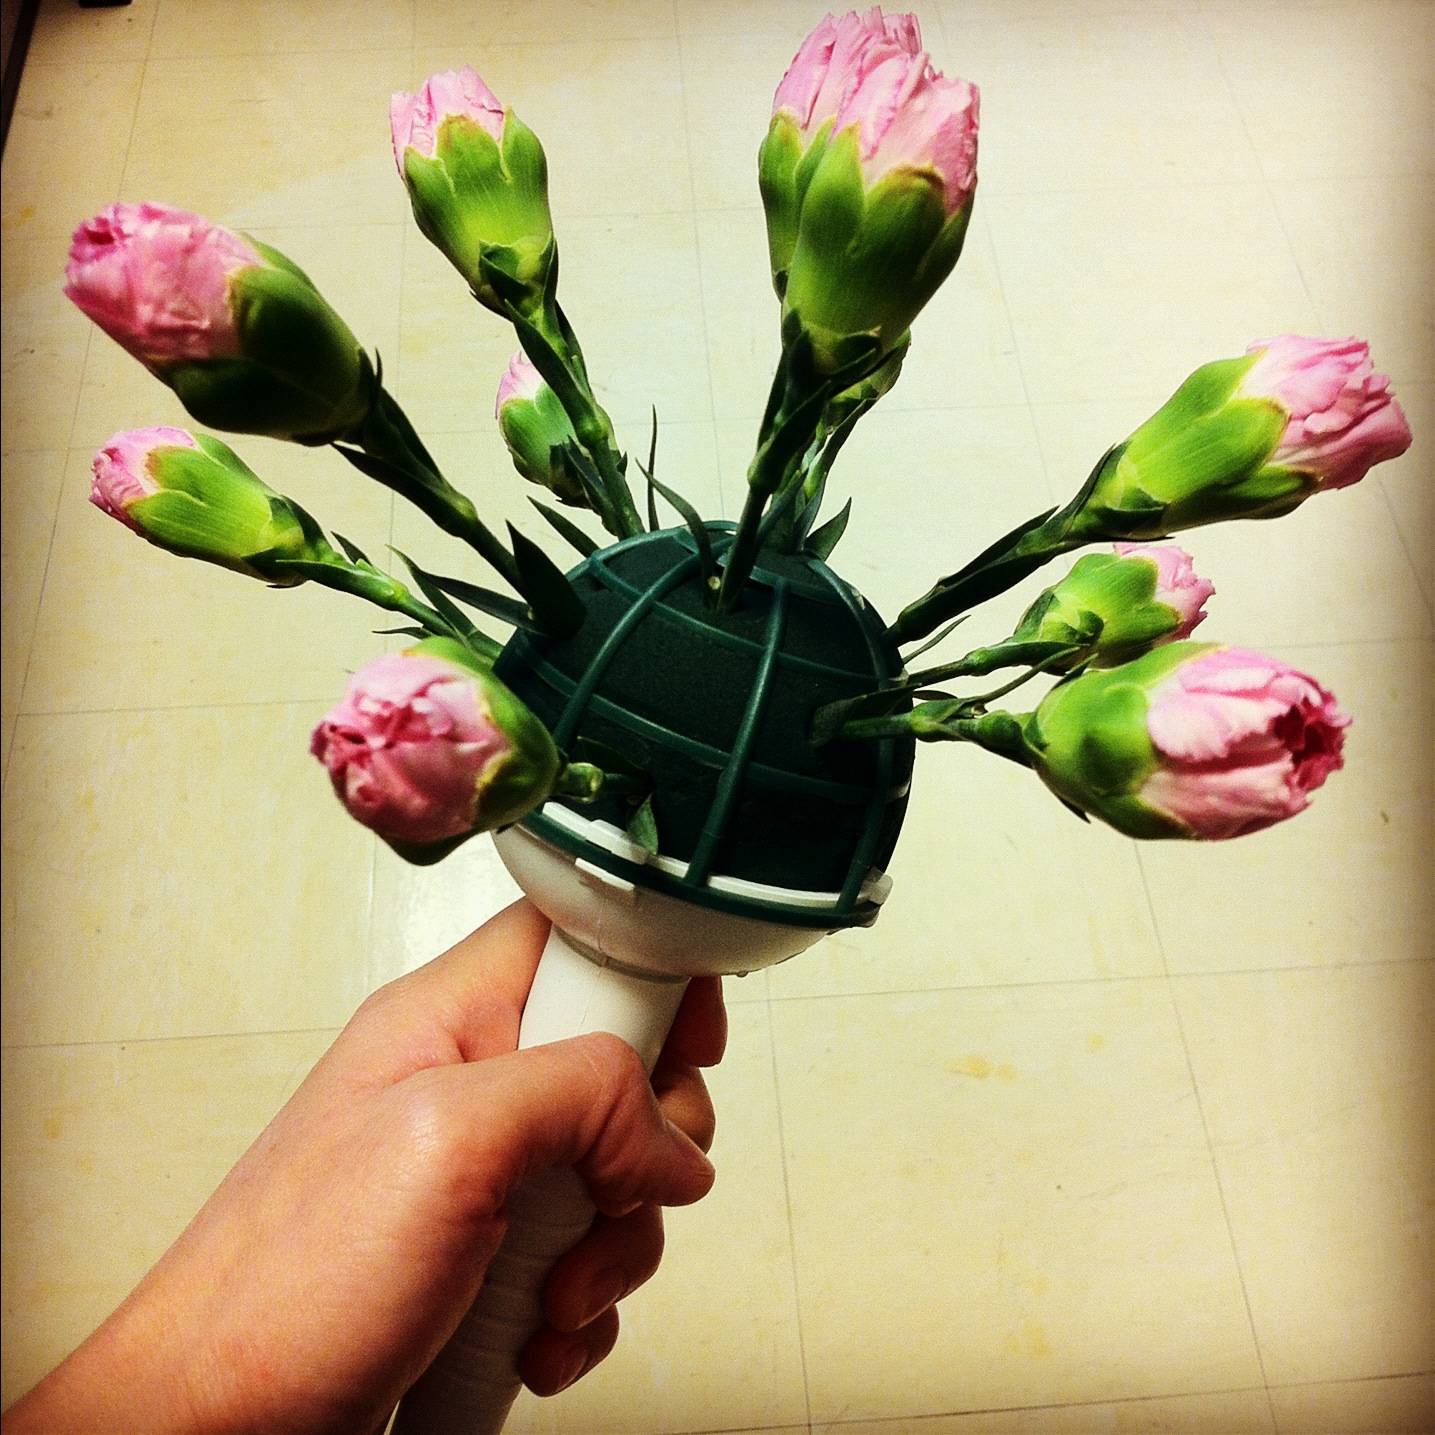 The light traveller handmade flower bouquet keep going around while moving down try not to pull stems out once you have inserted them as it can break down the foam izmirmasajfo